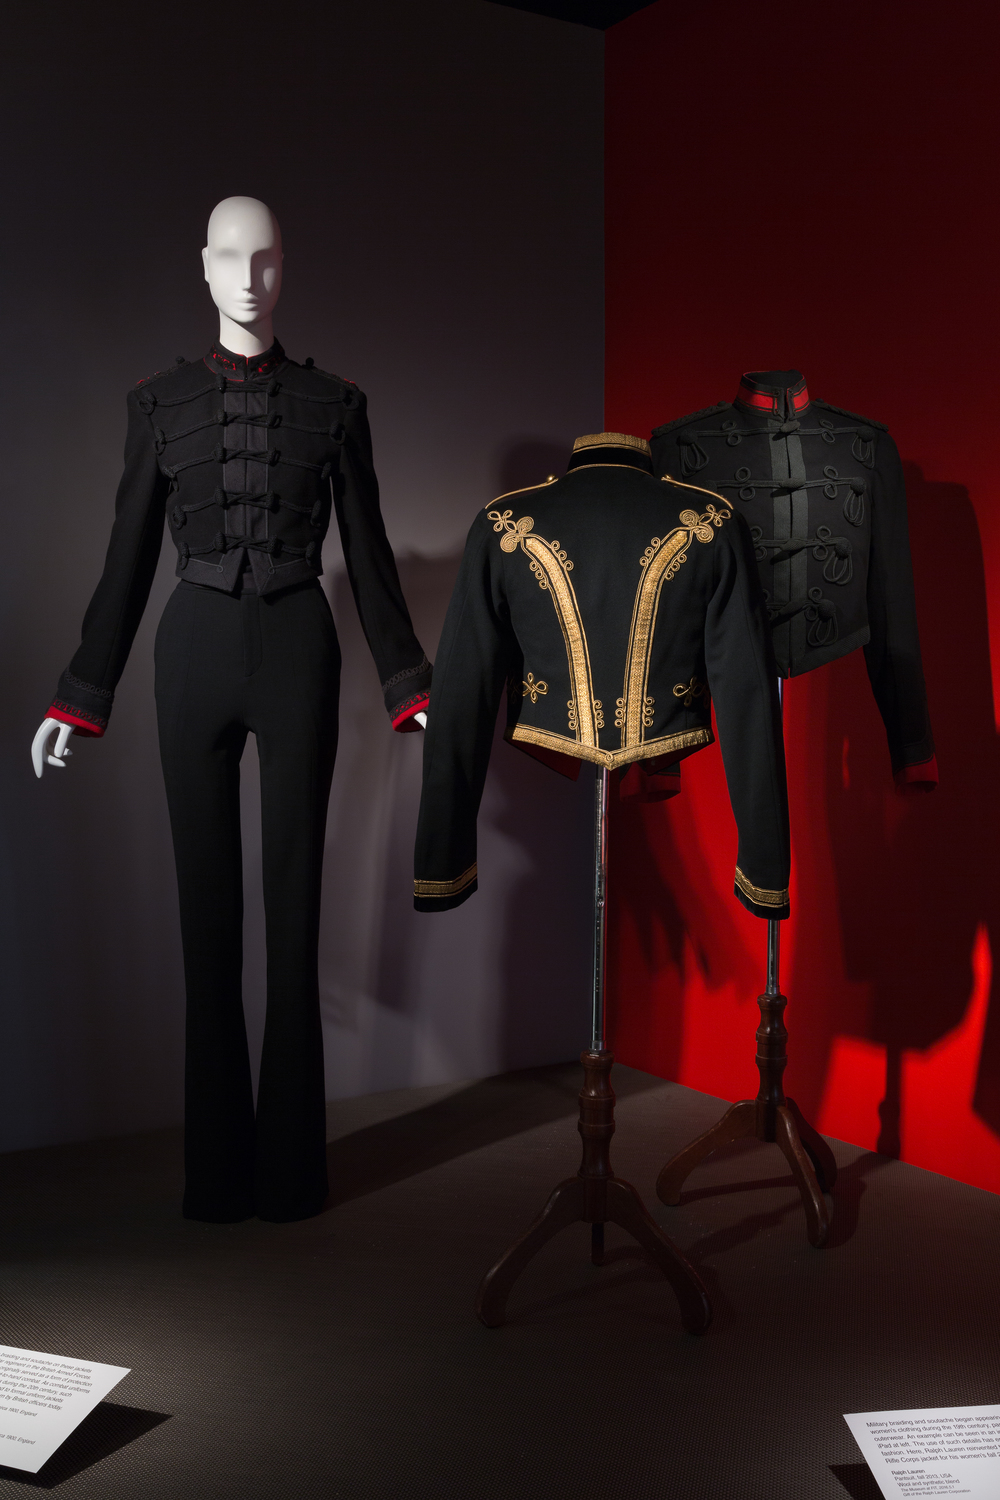 "(left) Ralph Lauren, ""pantsuit,"" Fall 2013, wool and synthetic blend, USA. Gift of the Ralph Lauren Corporation. (center) Man's Royal Artillery ""mess dress"" jacket, circa 1900, black and red wool, metallic thread, England. Gift of Adele Simpson. (right) Man's King's Royal Rifle Corps ""mess dress"" jacket, circa 1900, green wool, red wool, black braid, England. Gift of Adele Simpson. Photo courtesy of Museum at FIT."